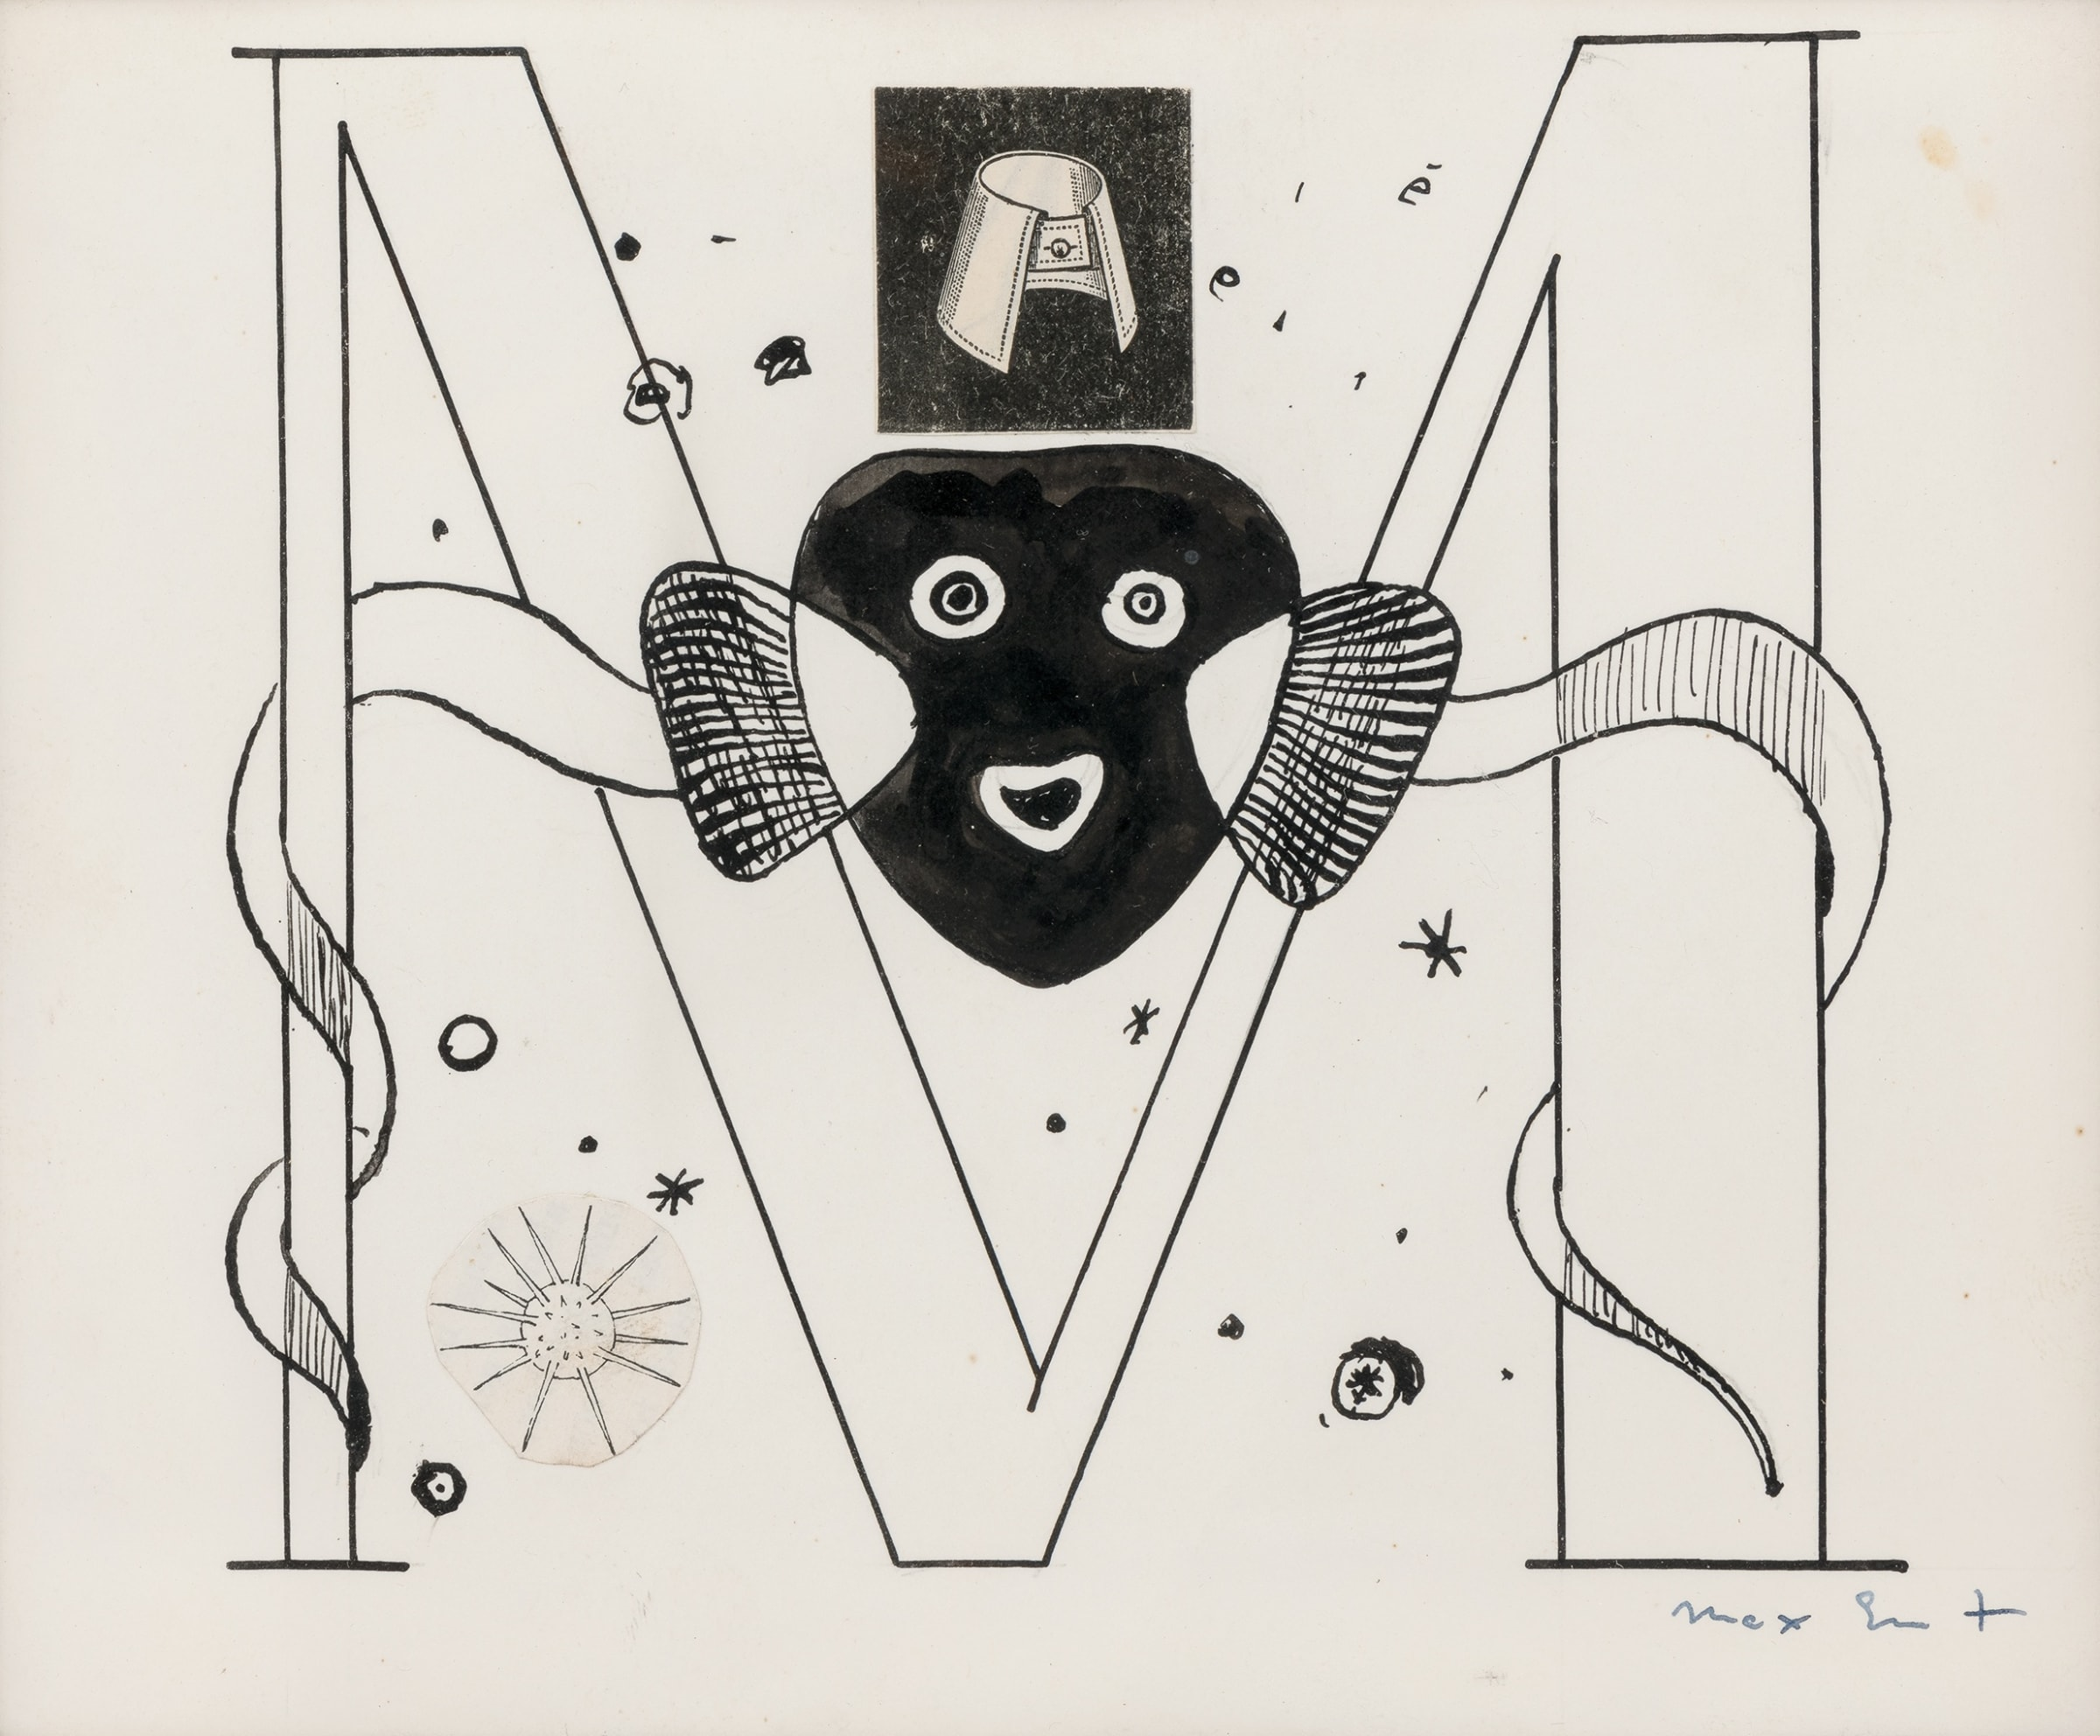 """<span class=""""link fancybox-details-link""""><a href=""""/artists/165-max-ernst/works/10516-max-ernst-initial-m-illustration-for-benjamin-peret-la-brebis-1949/"""">View Detail Page</a></span><div class=""""artist""""><span class=""""artist""""><strong>MAX ERNST</strong></span></div><div class=""""title""""><em>'Initial M' Illustration for Benjamin Péret, La Brebis Galante, Paris, 1949</em>, 1949</div><div class=""""signed_and_dated"""">Signed lower right</div><div class=""""medium"""">Collage, pen and Indian ink on paper</div><div class=""""dimensions"""">14.6 x 17.8 cm<br /> 5 ¾ x 7 inches<br /> </div>"""